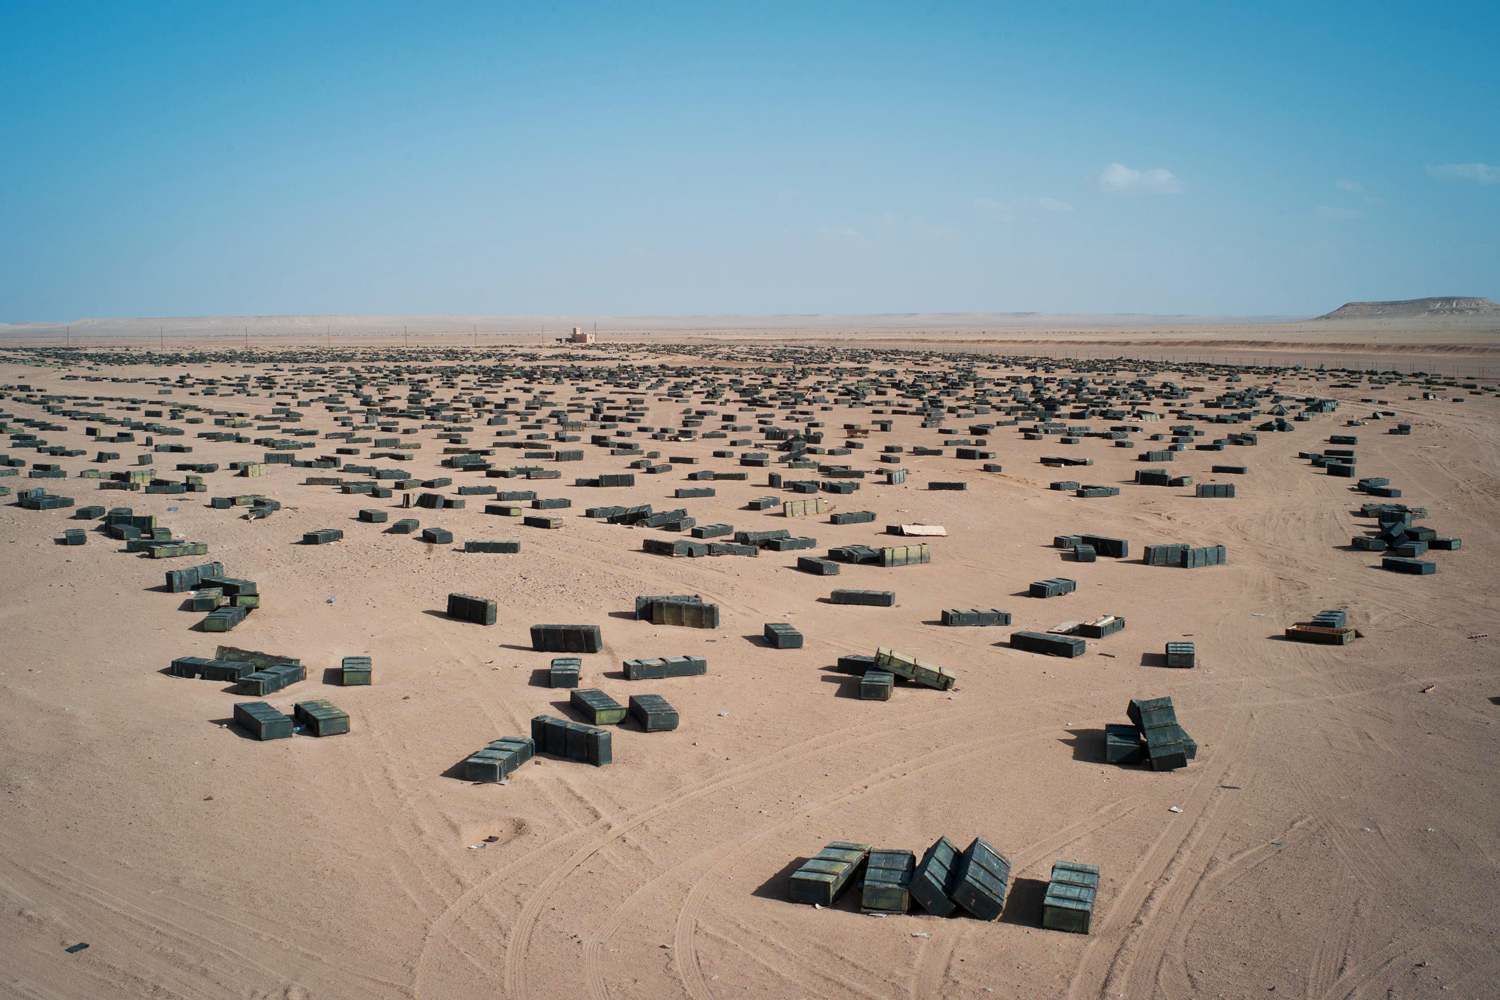 October 26, 2011. Munition crates are seen at an unguarded storage facility in the desert, some 62 miles (100 kilometers) south of Sirt, Libya.